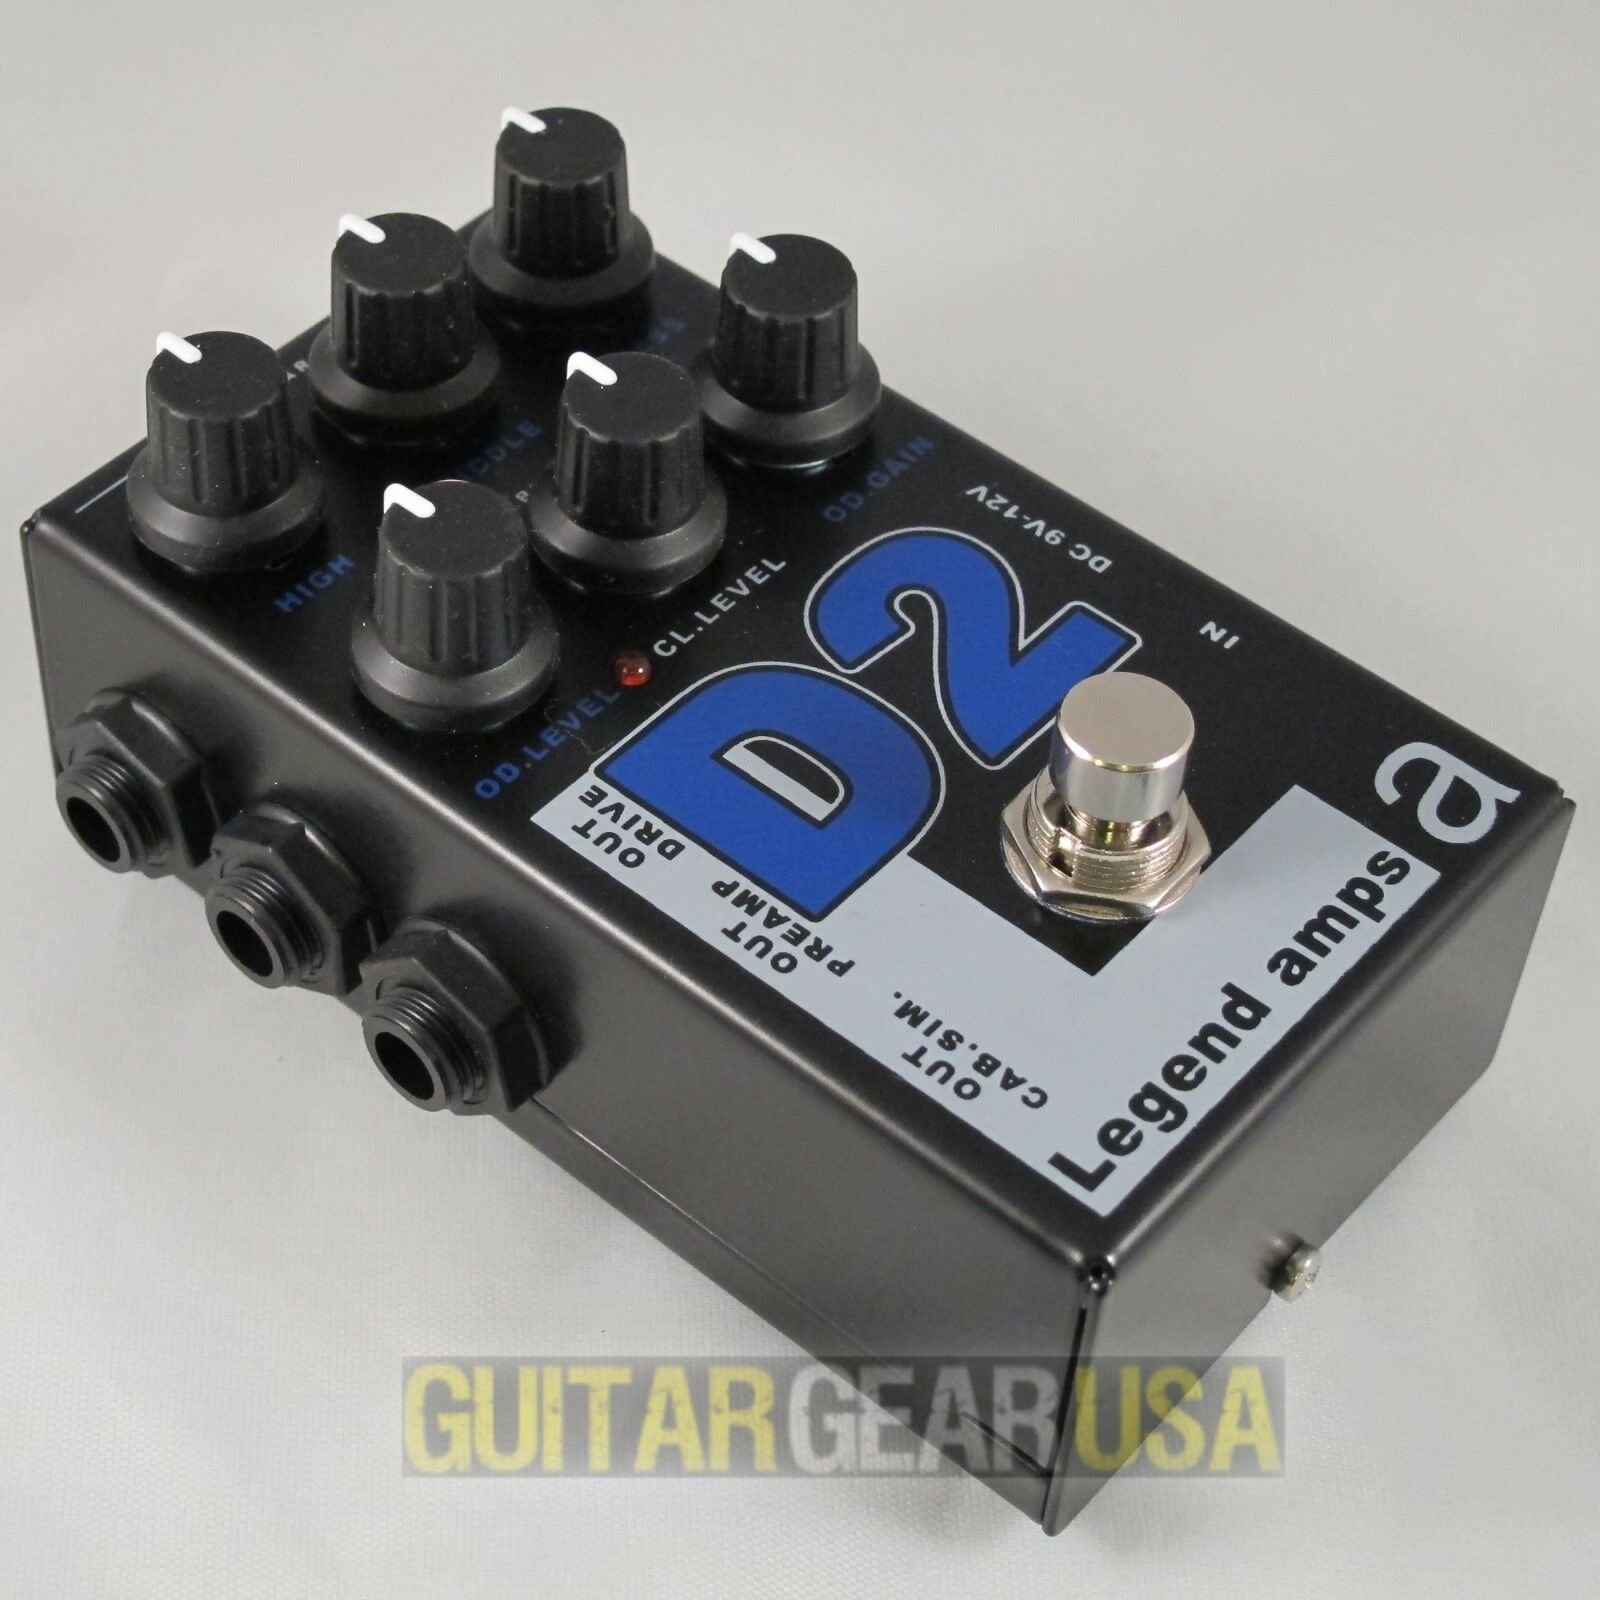 AMT Electronics Guitar Preamp D-2 (Legend Amp Series 2) emulates Diezel amps